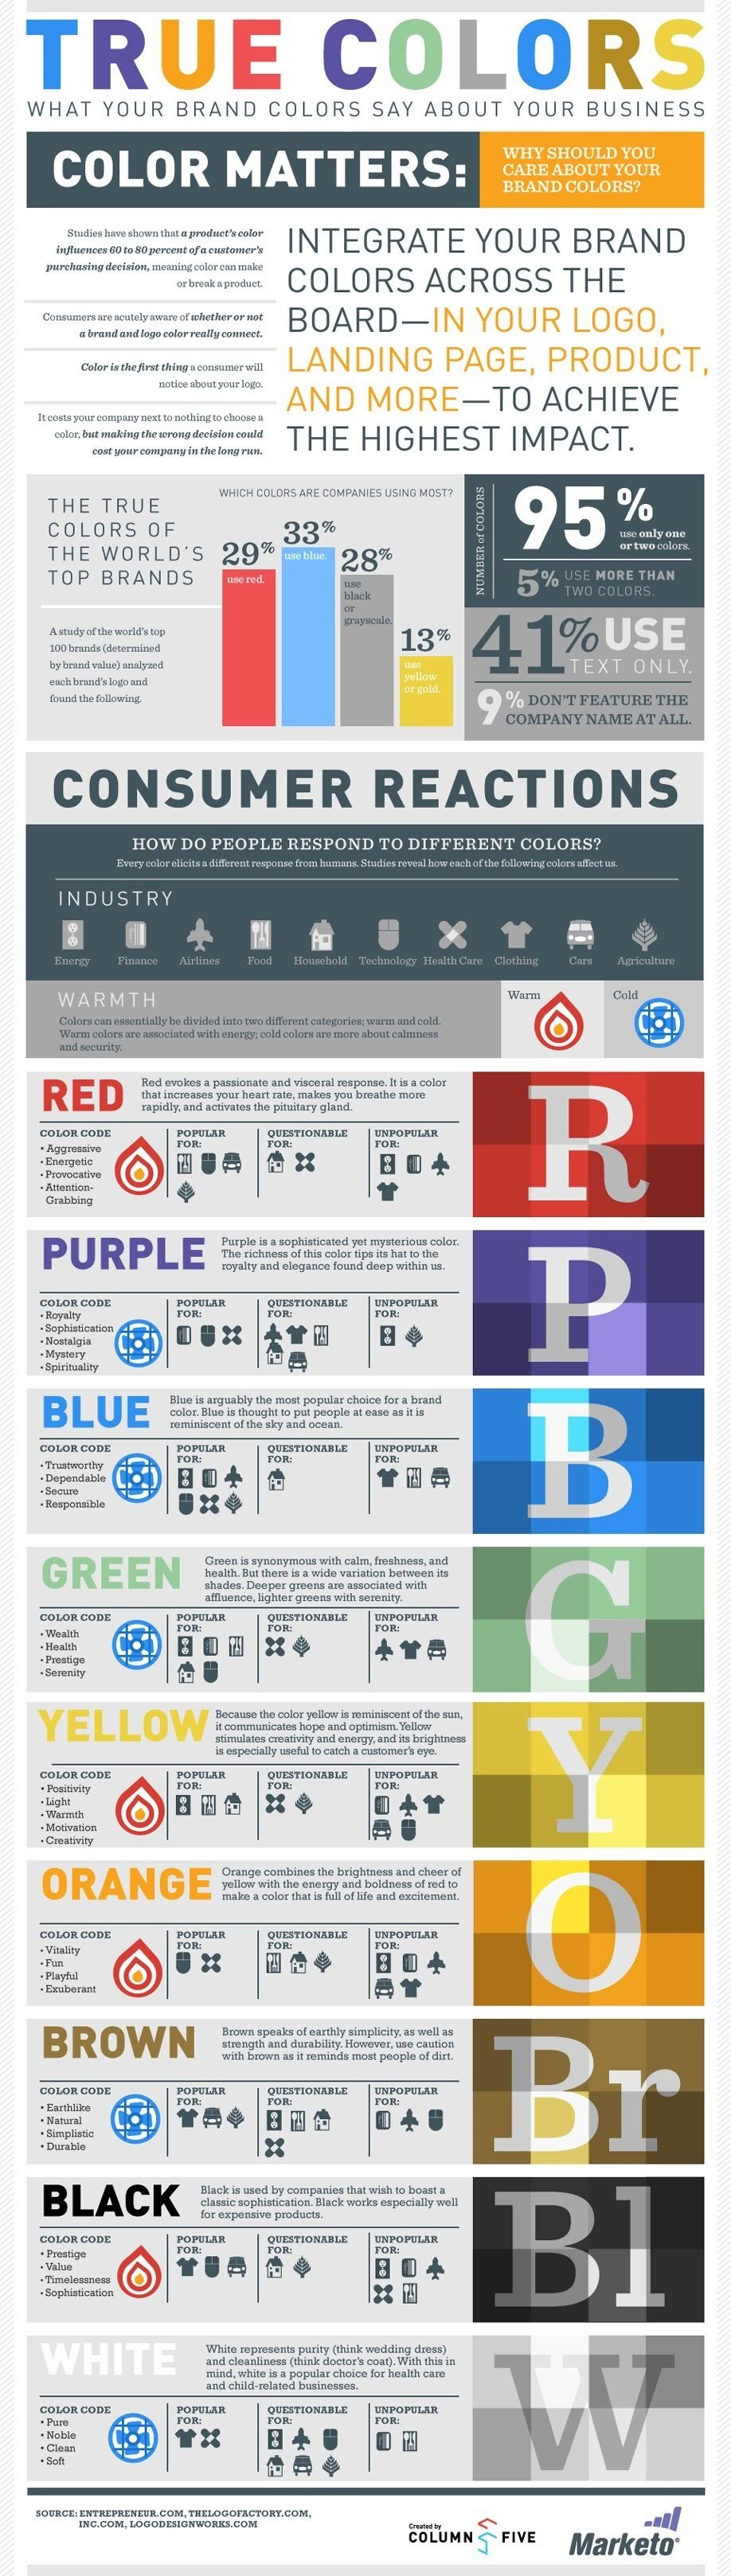 What Your Brand Colors Say About Your Business #infographic